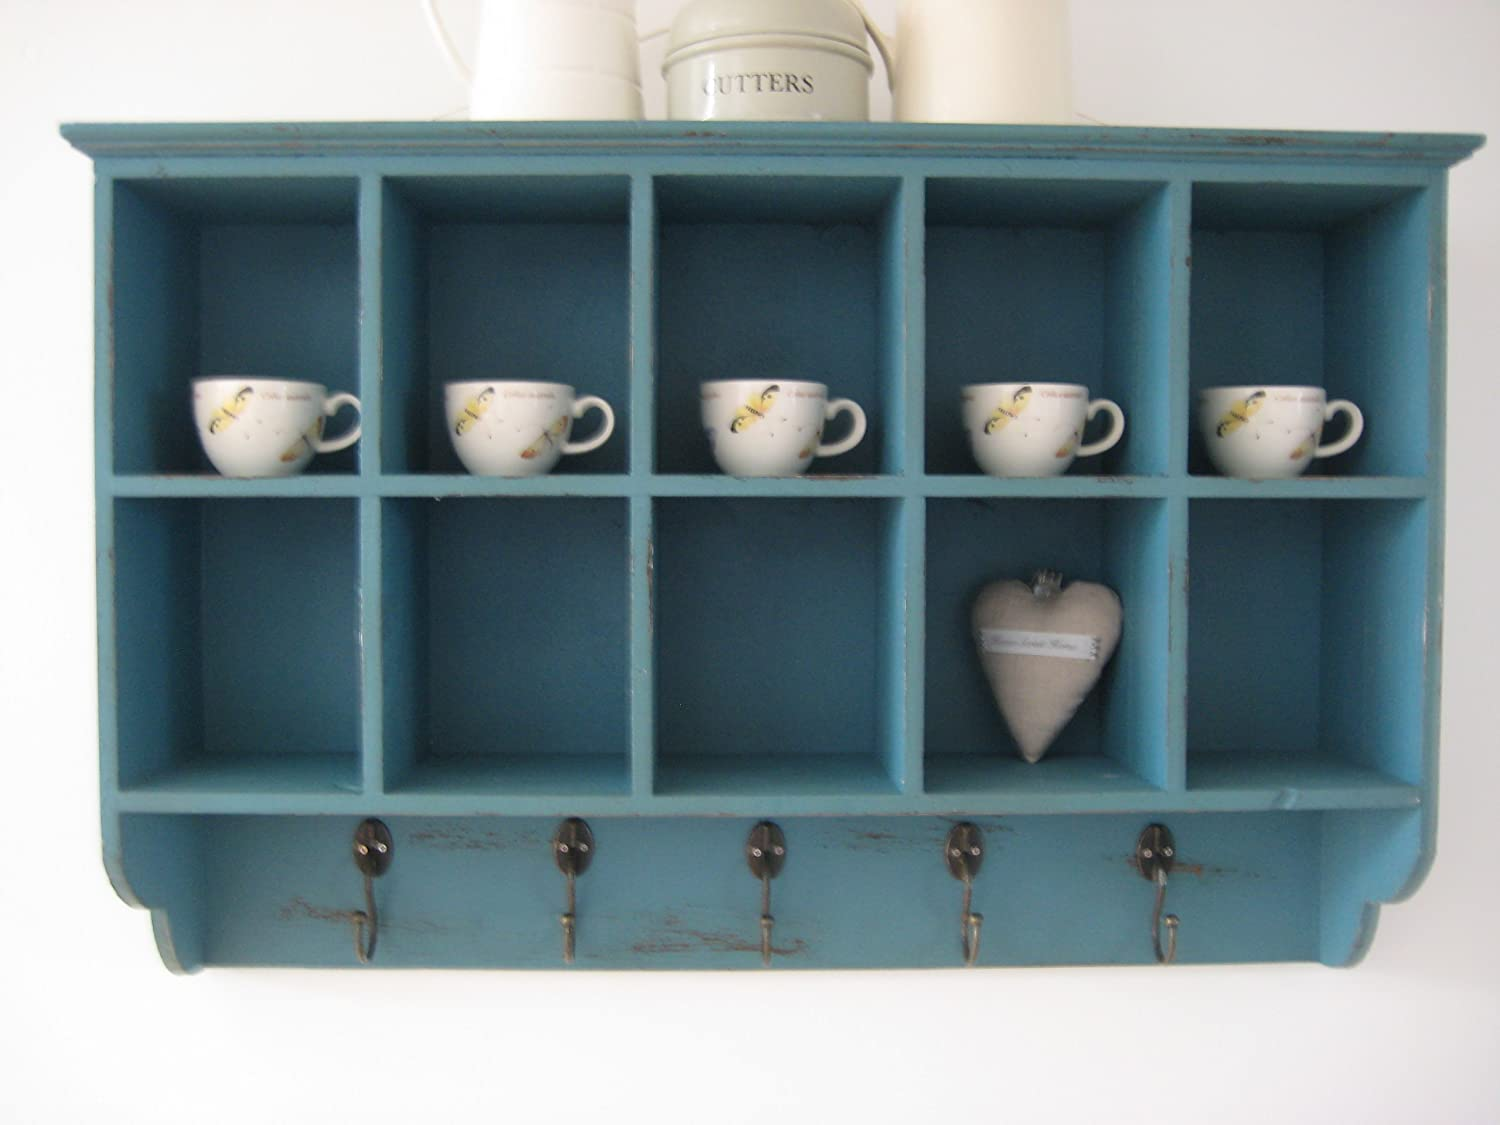 Shabby wooden french vintage style 10 pigeon hole cupboard cabinet shabby wooden french vintage style 10 pigeon hole cupboard cabinet shelves hooks blue amazon kitchen home amipublicfo Gallery